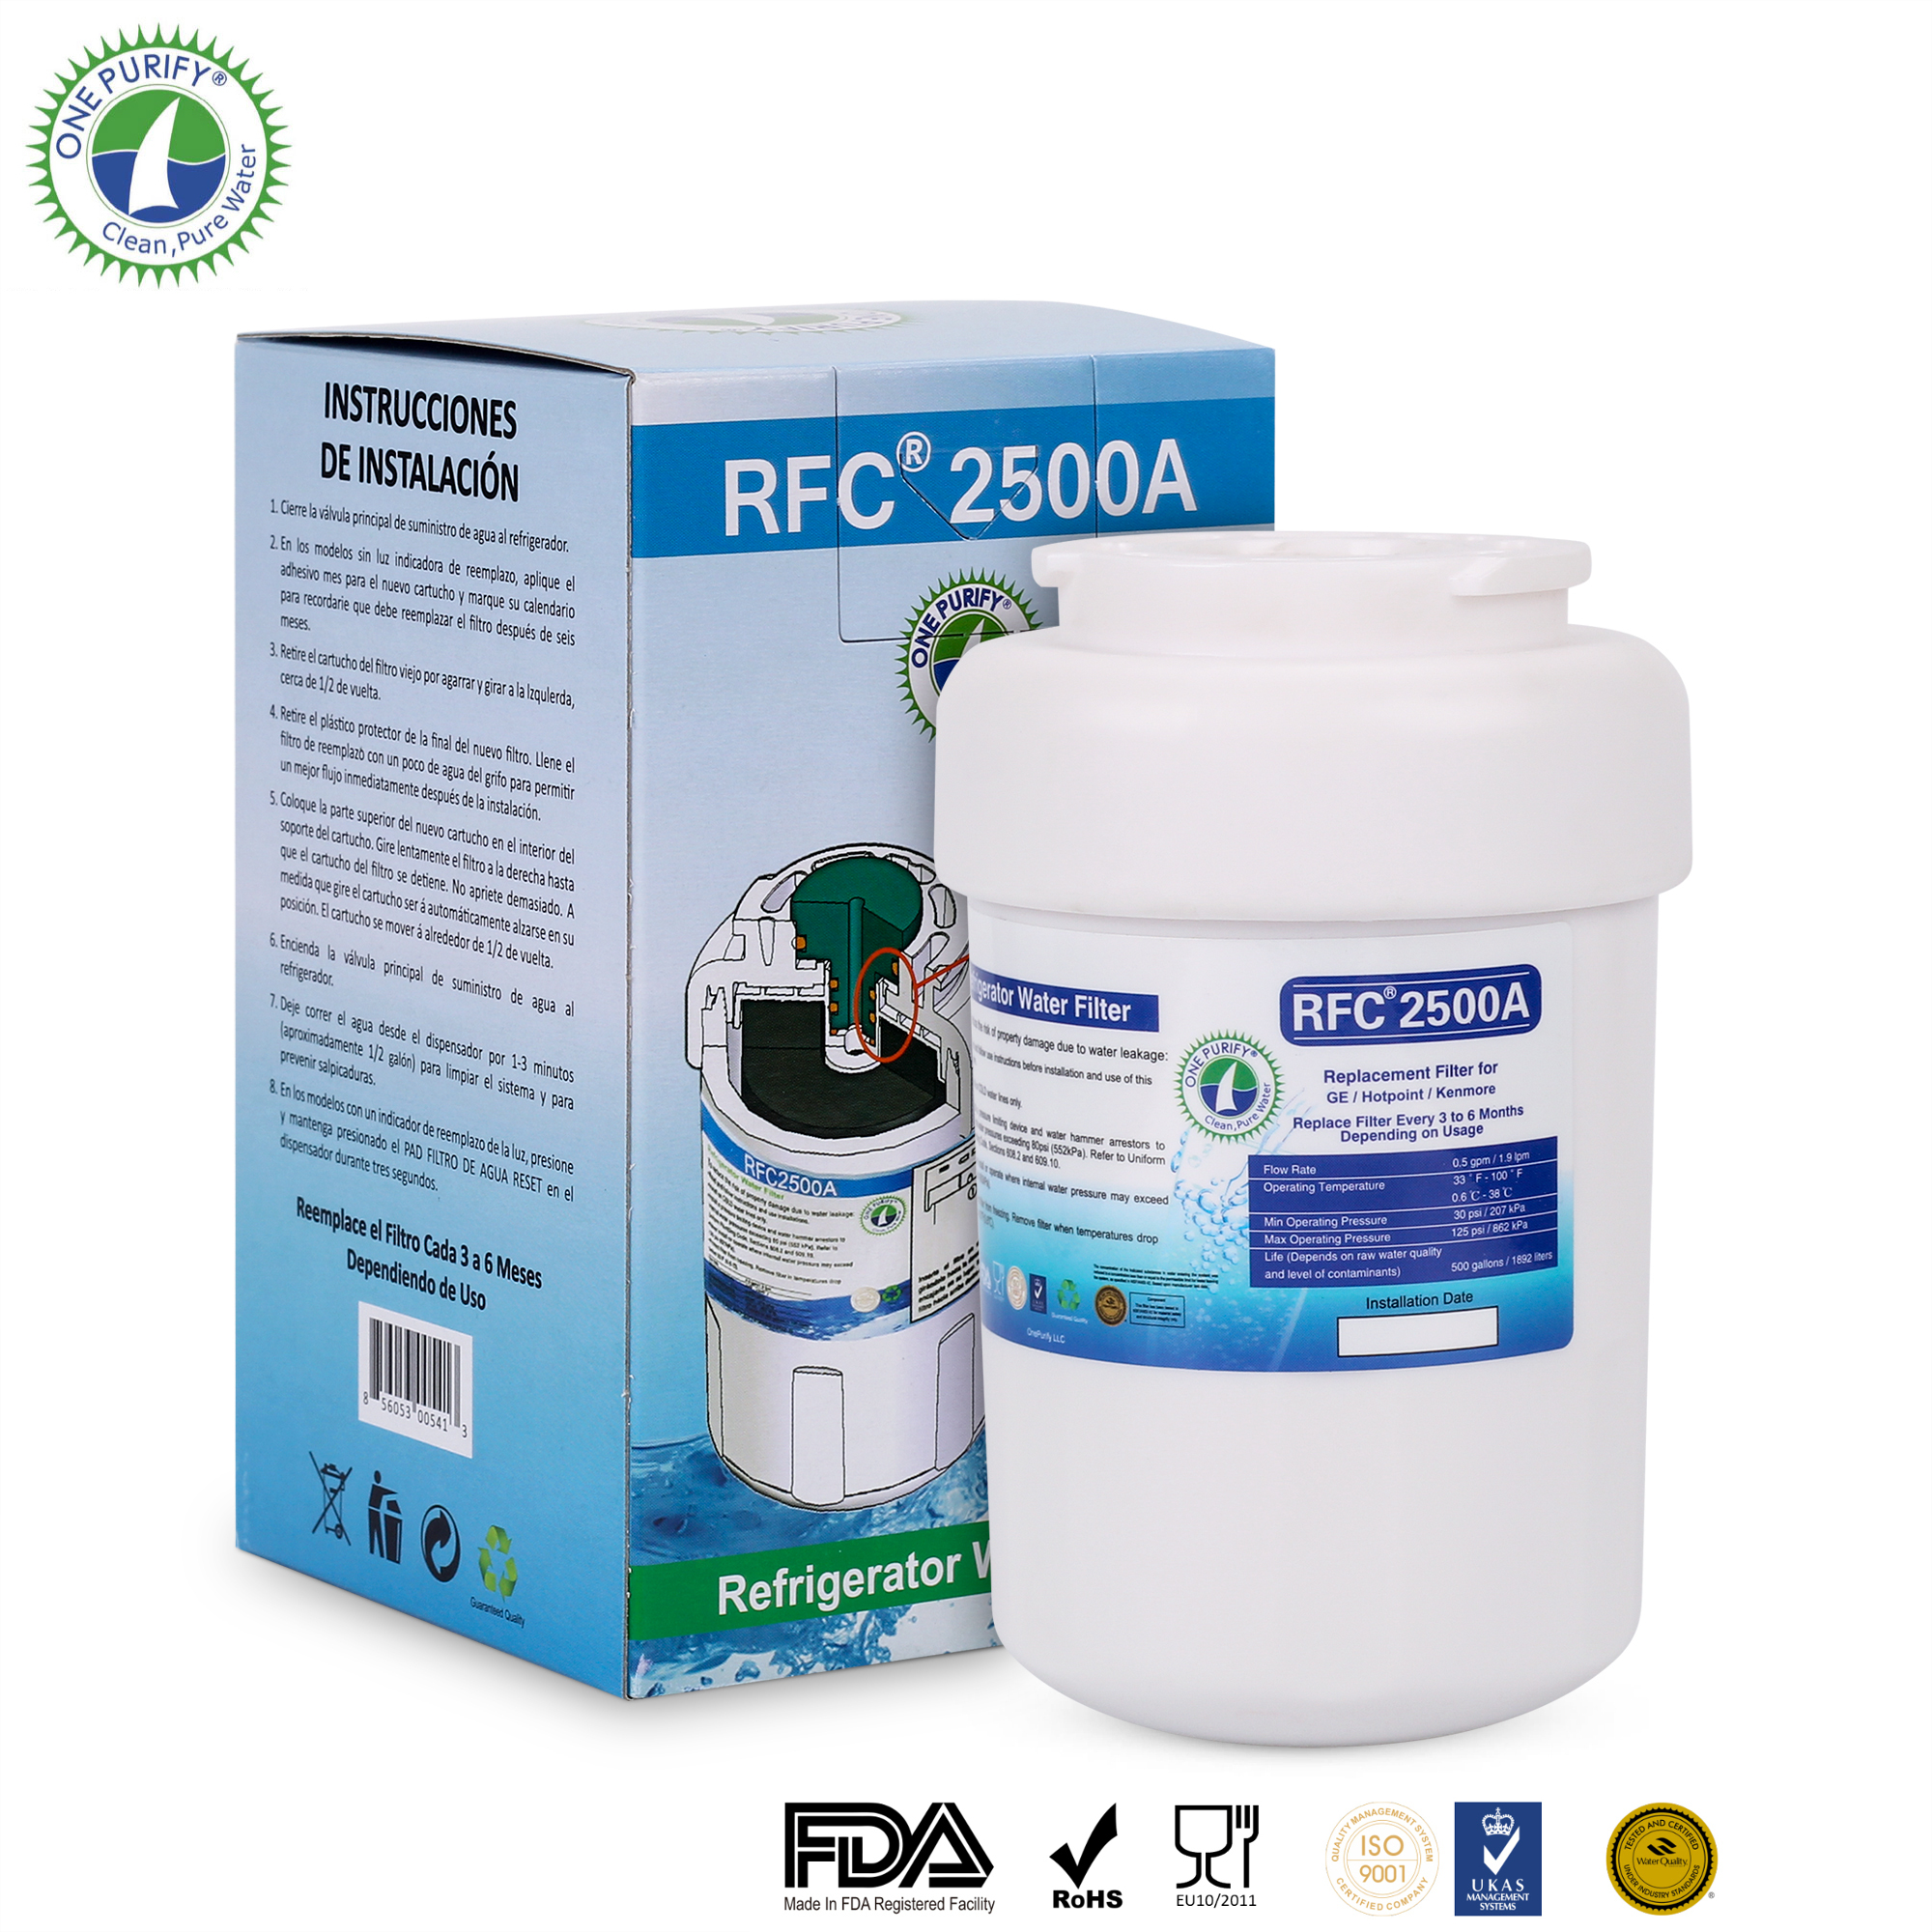 OnePurify RFC2500A Replacement for MWF, MWFA, MWFP, GWF, GWFA, 9991,46-9991, 469991 Refrigerator Water Filter